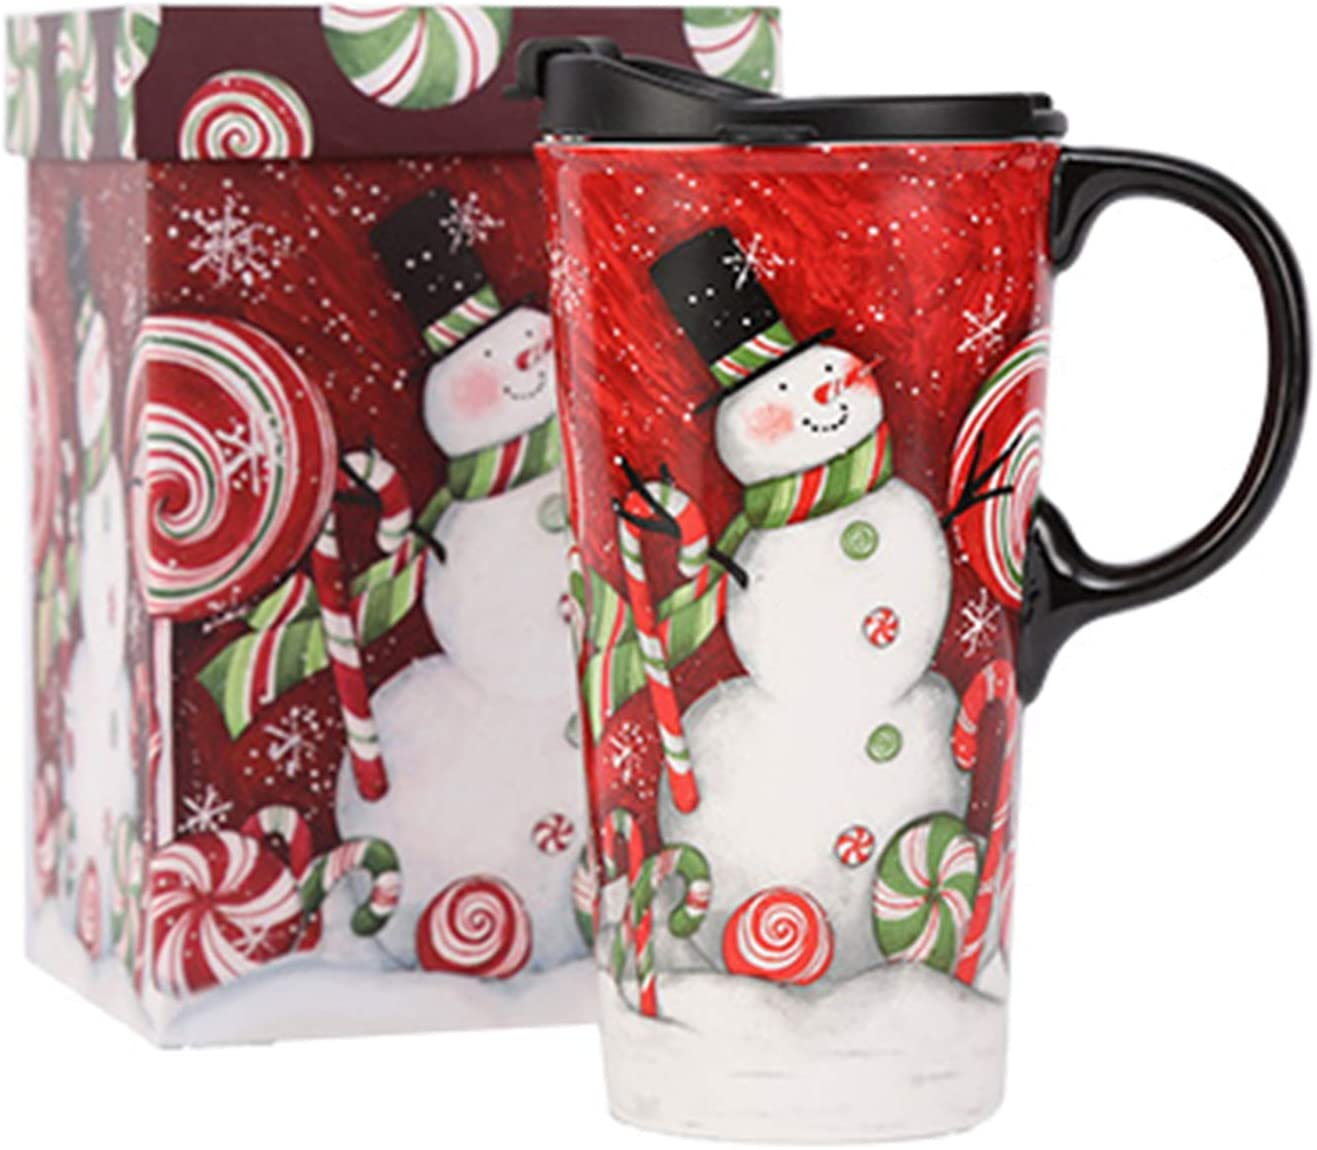 Topadorn Coffee Ceramic Mug Porcelain Latte Tea Cup With Lid in Gift Box 17oz., Santa Snowman